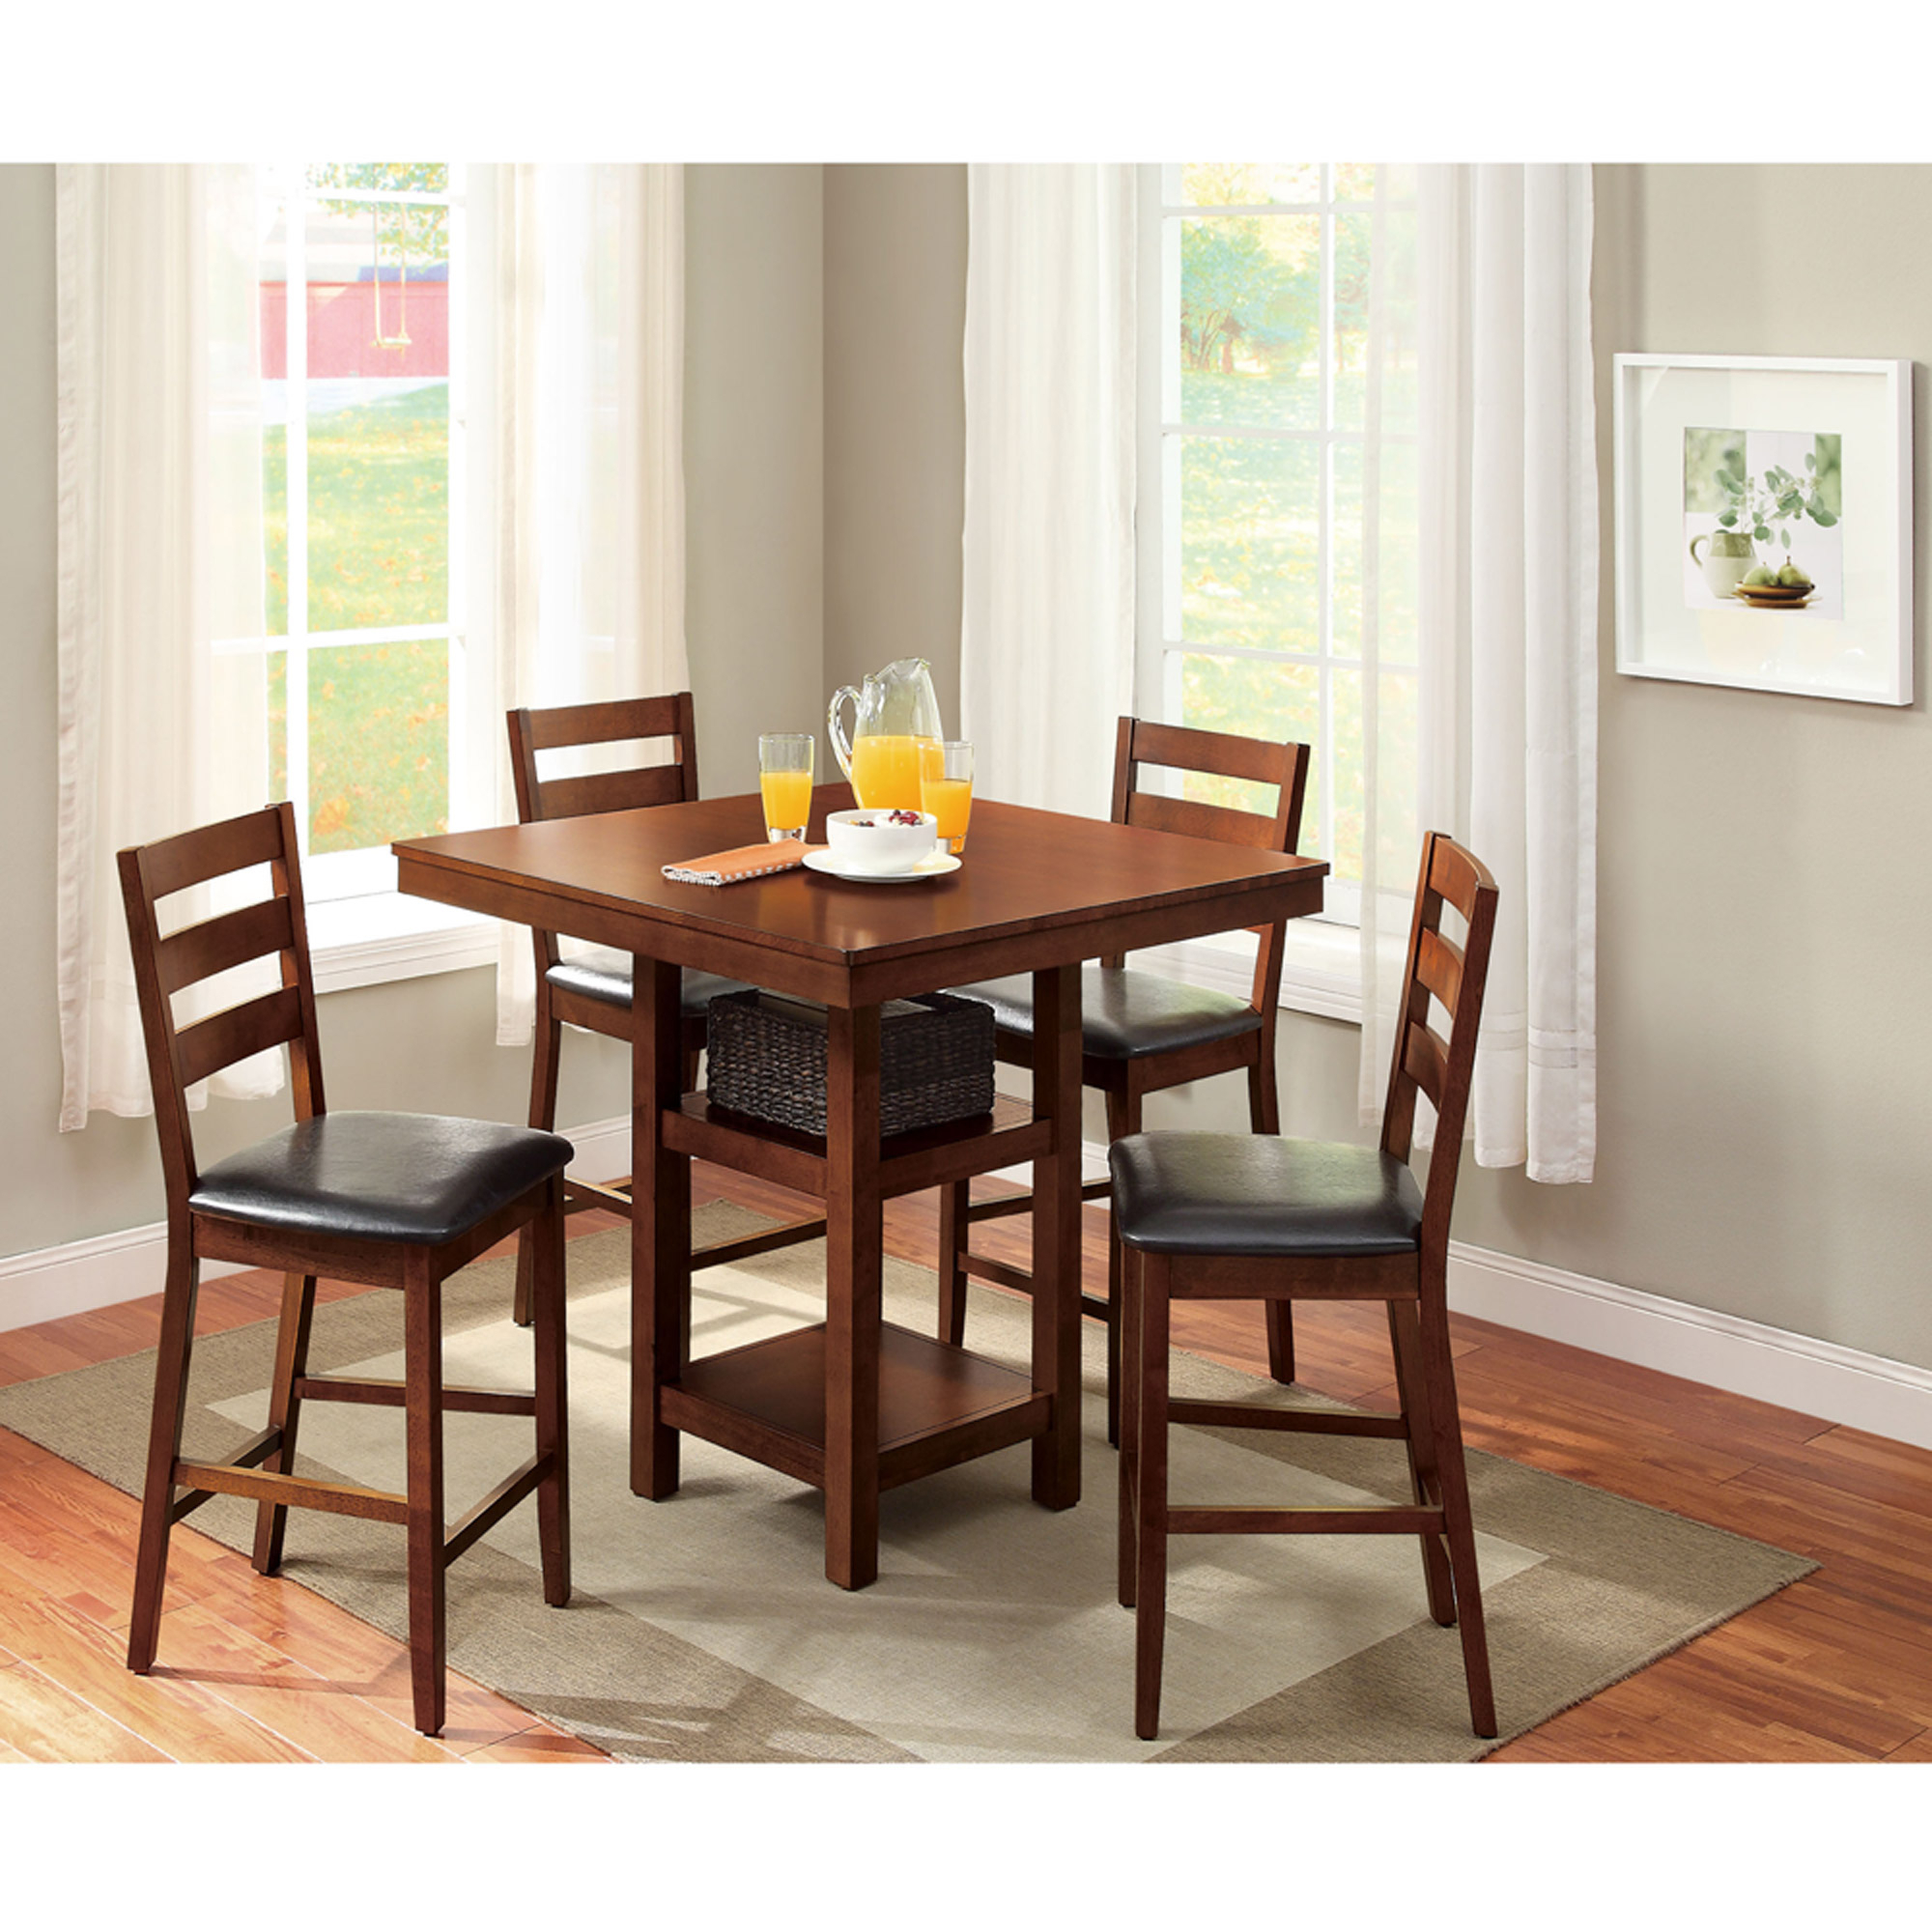 Current Better Homes & Gardens Dalton Park 5 Piece Counter Height Dining Set Regarding 5 Piece Dining Sets (View 12 of 25)